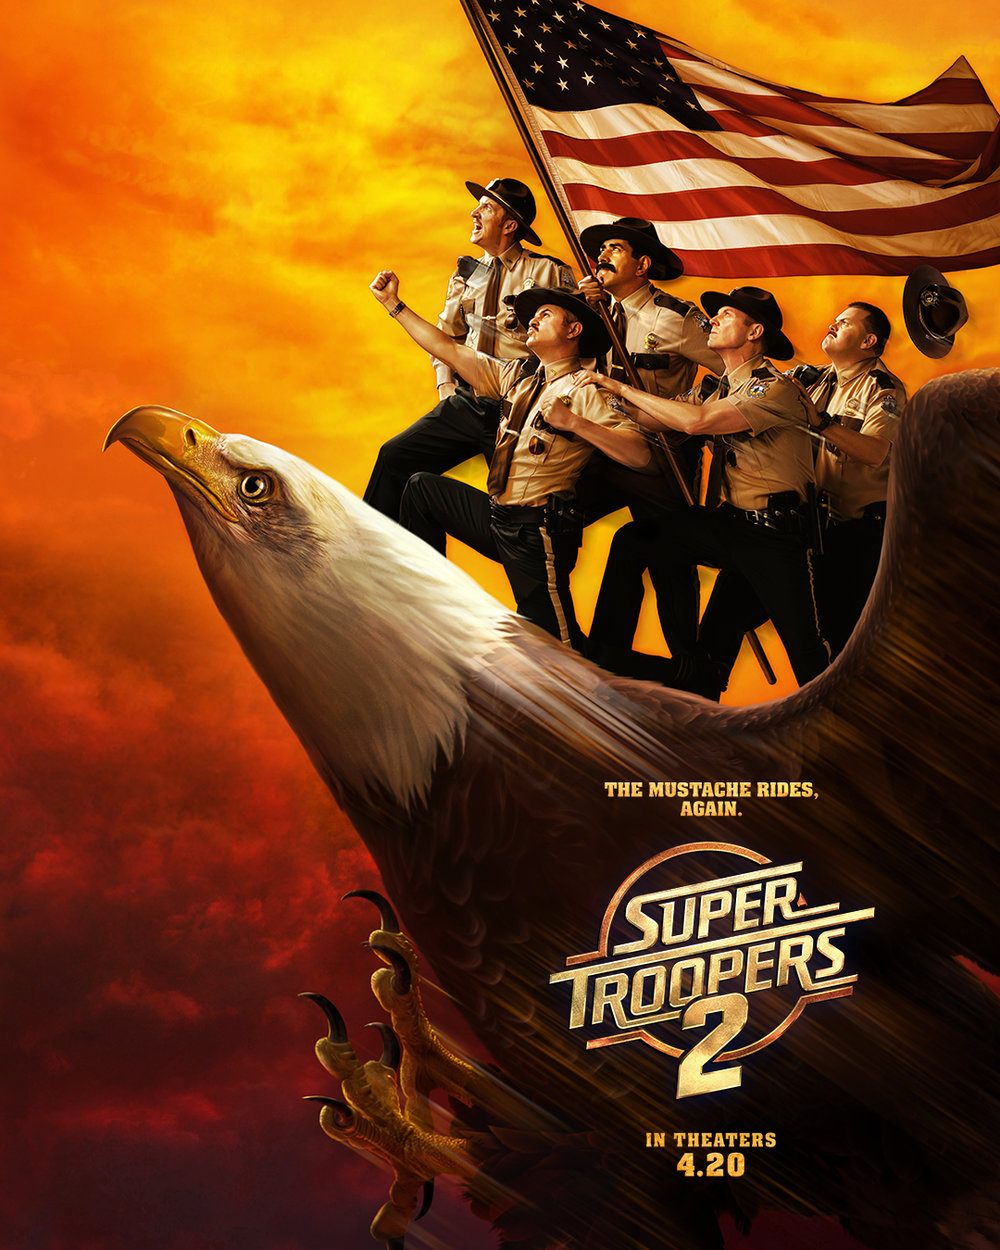 SuperTroopers2_OfficialPoster.jpg